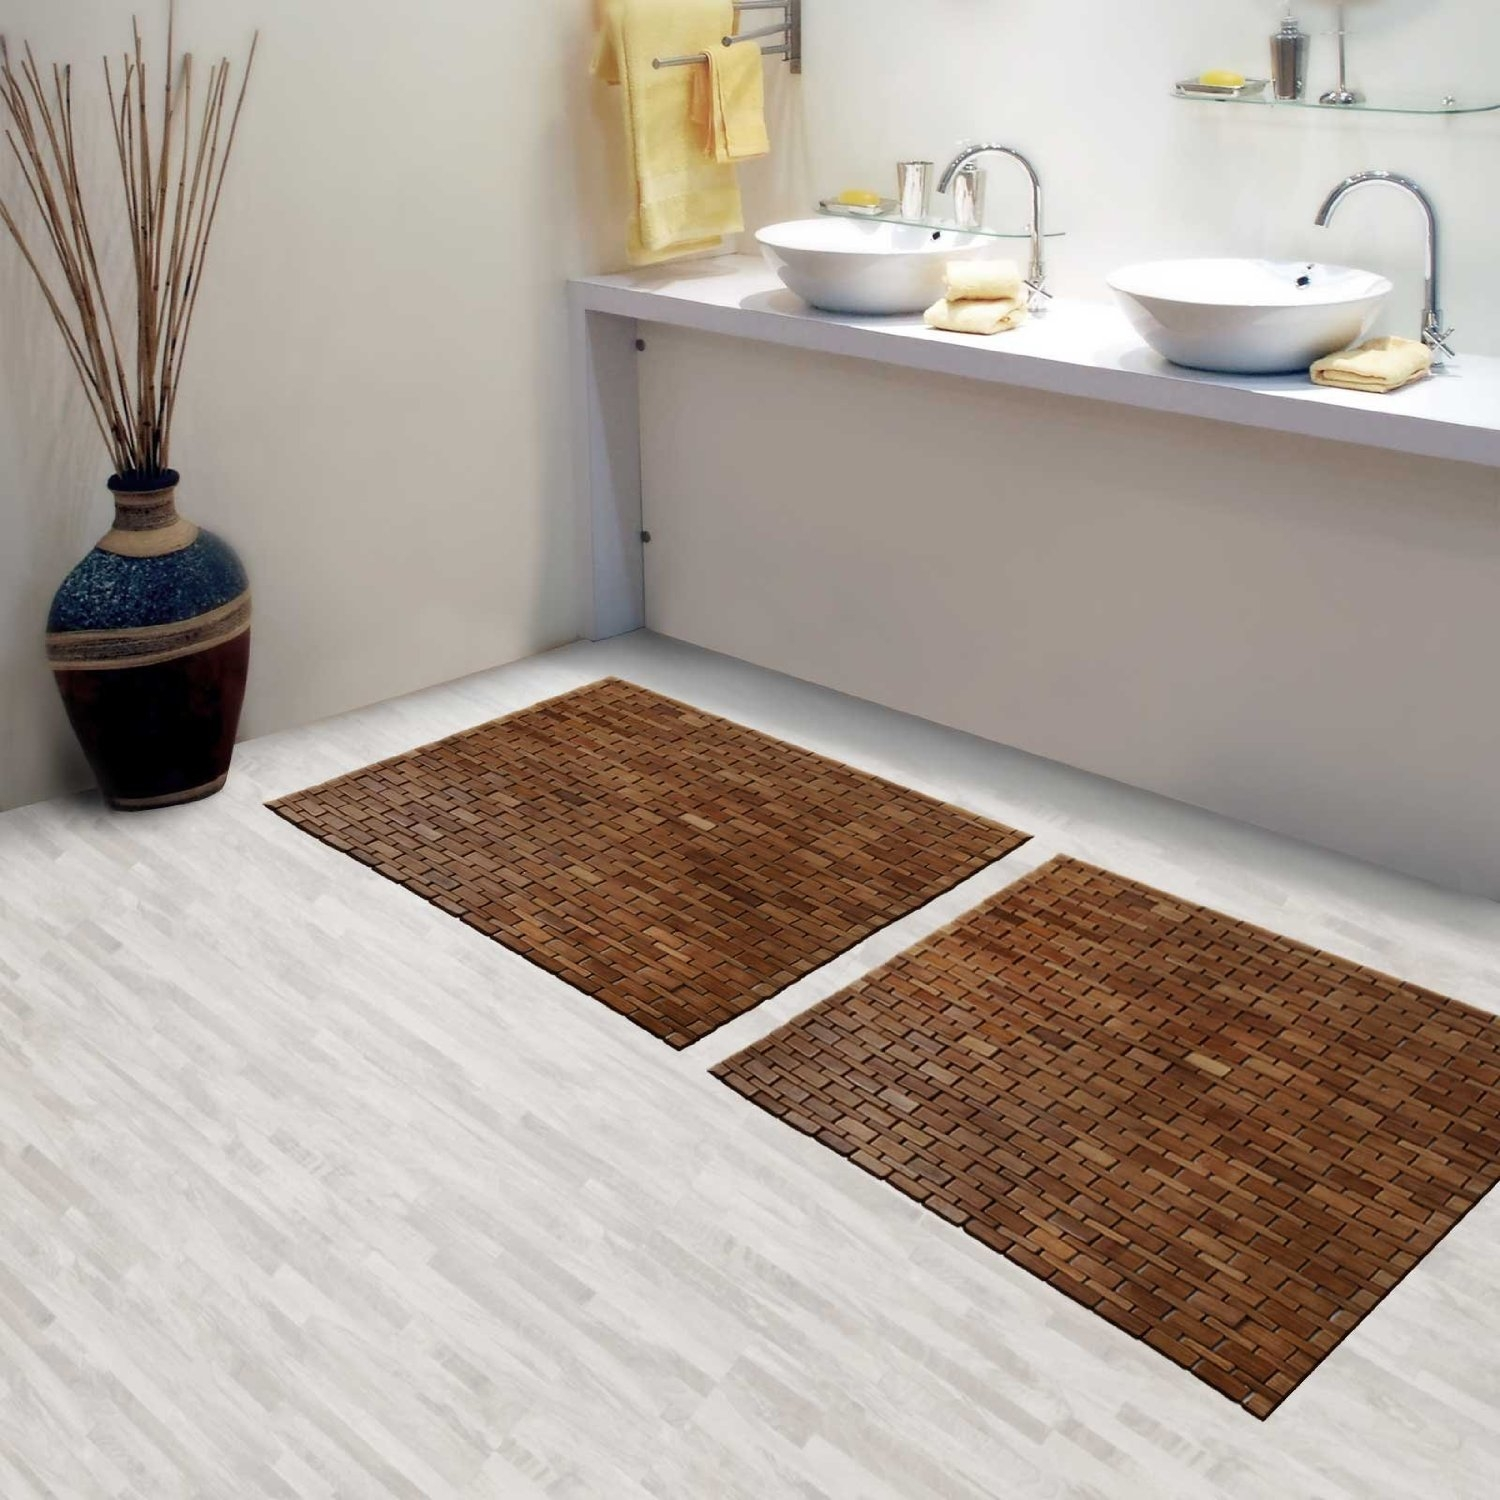 Bamboo Bathroom Mat Set